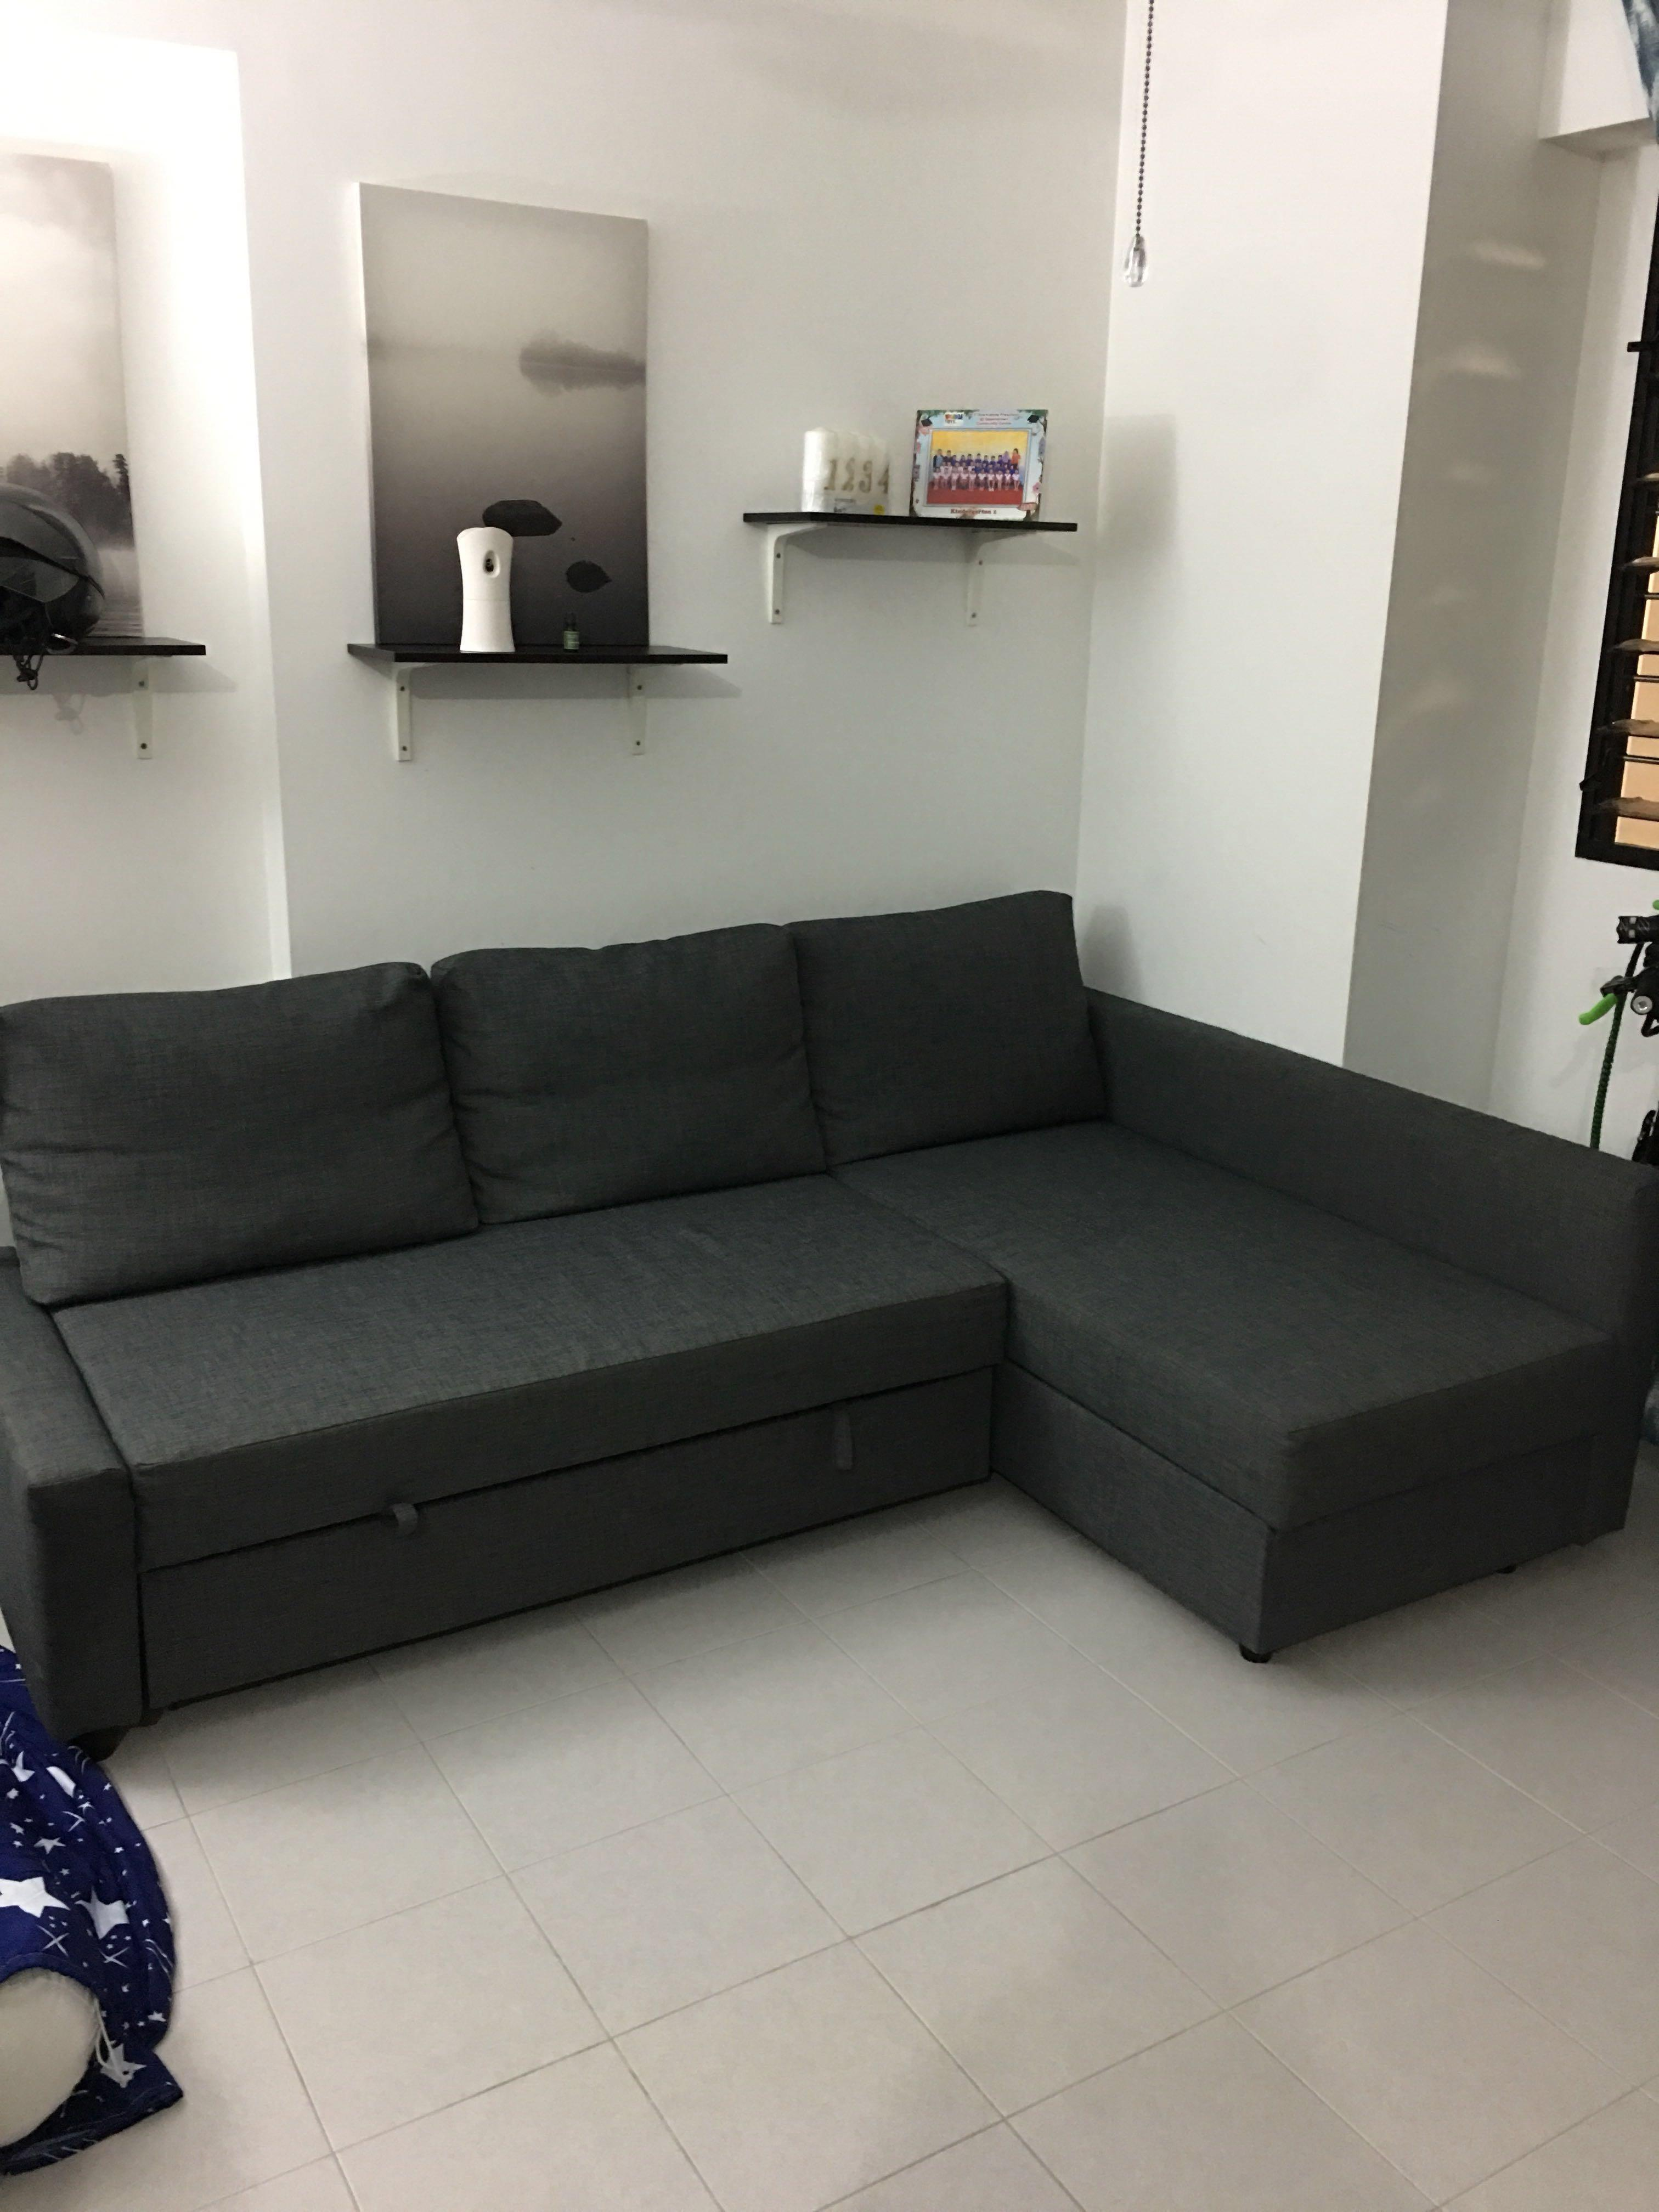 L Shaped Sofa bed storage bed queensize , Furniture, Sofas on Carousell